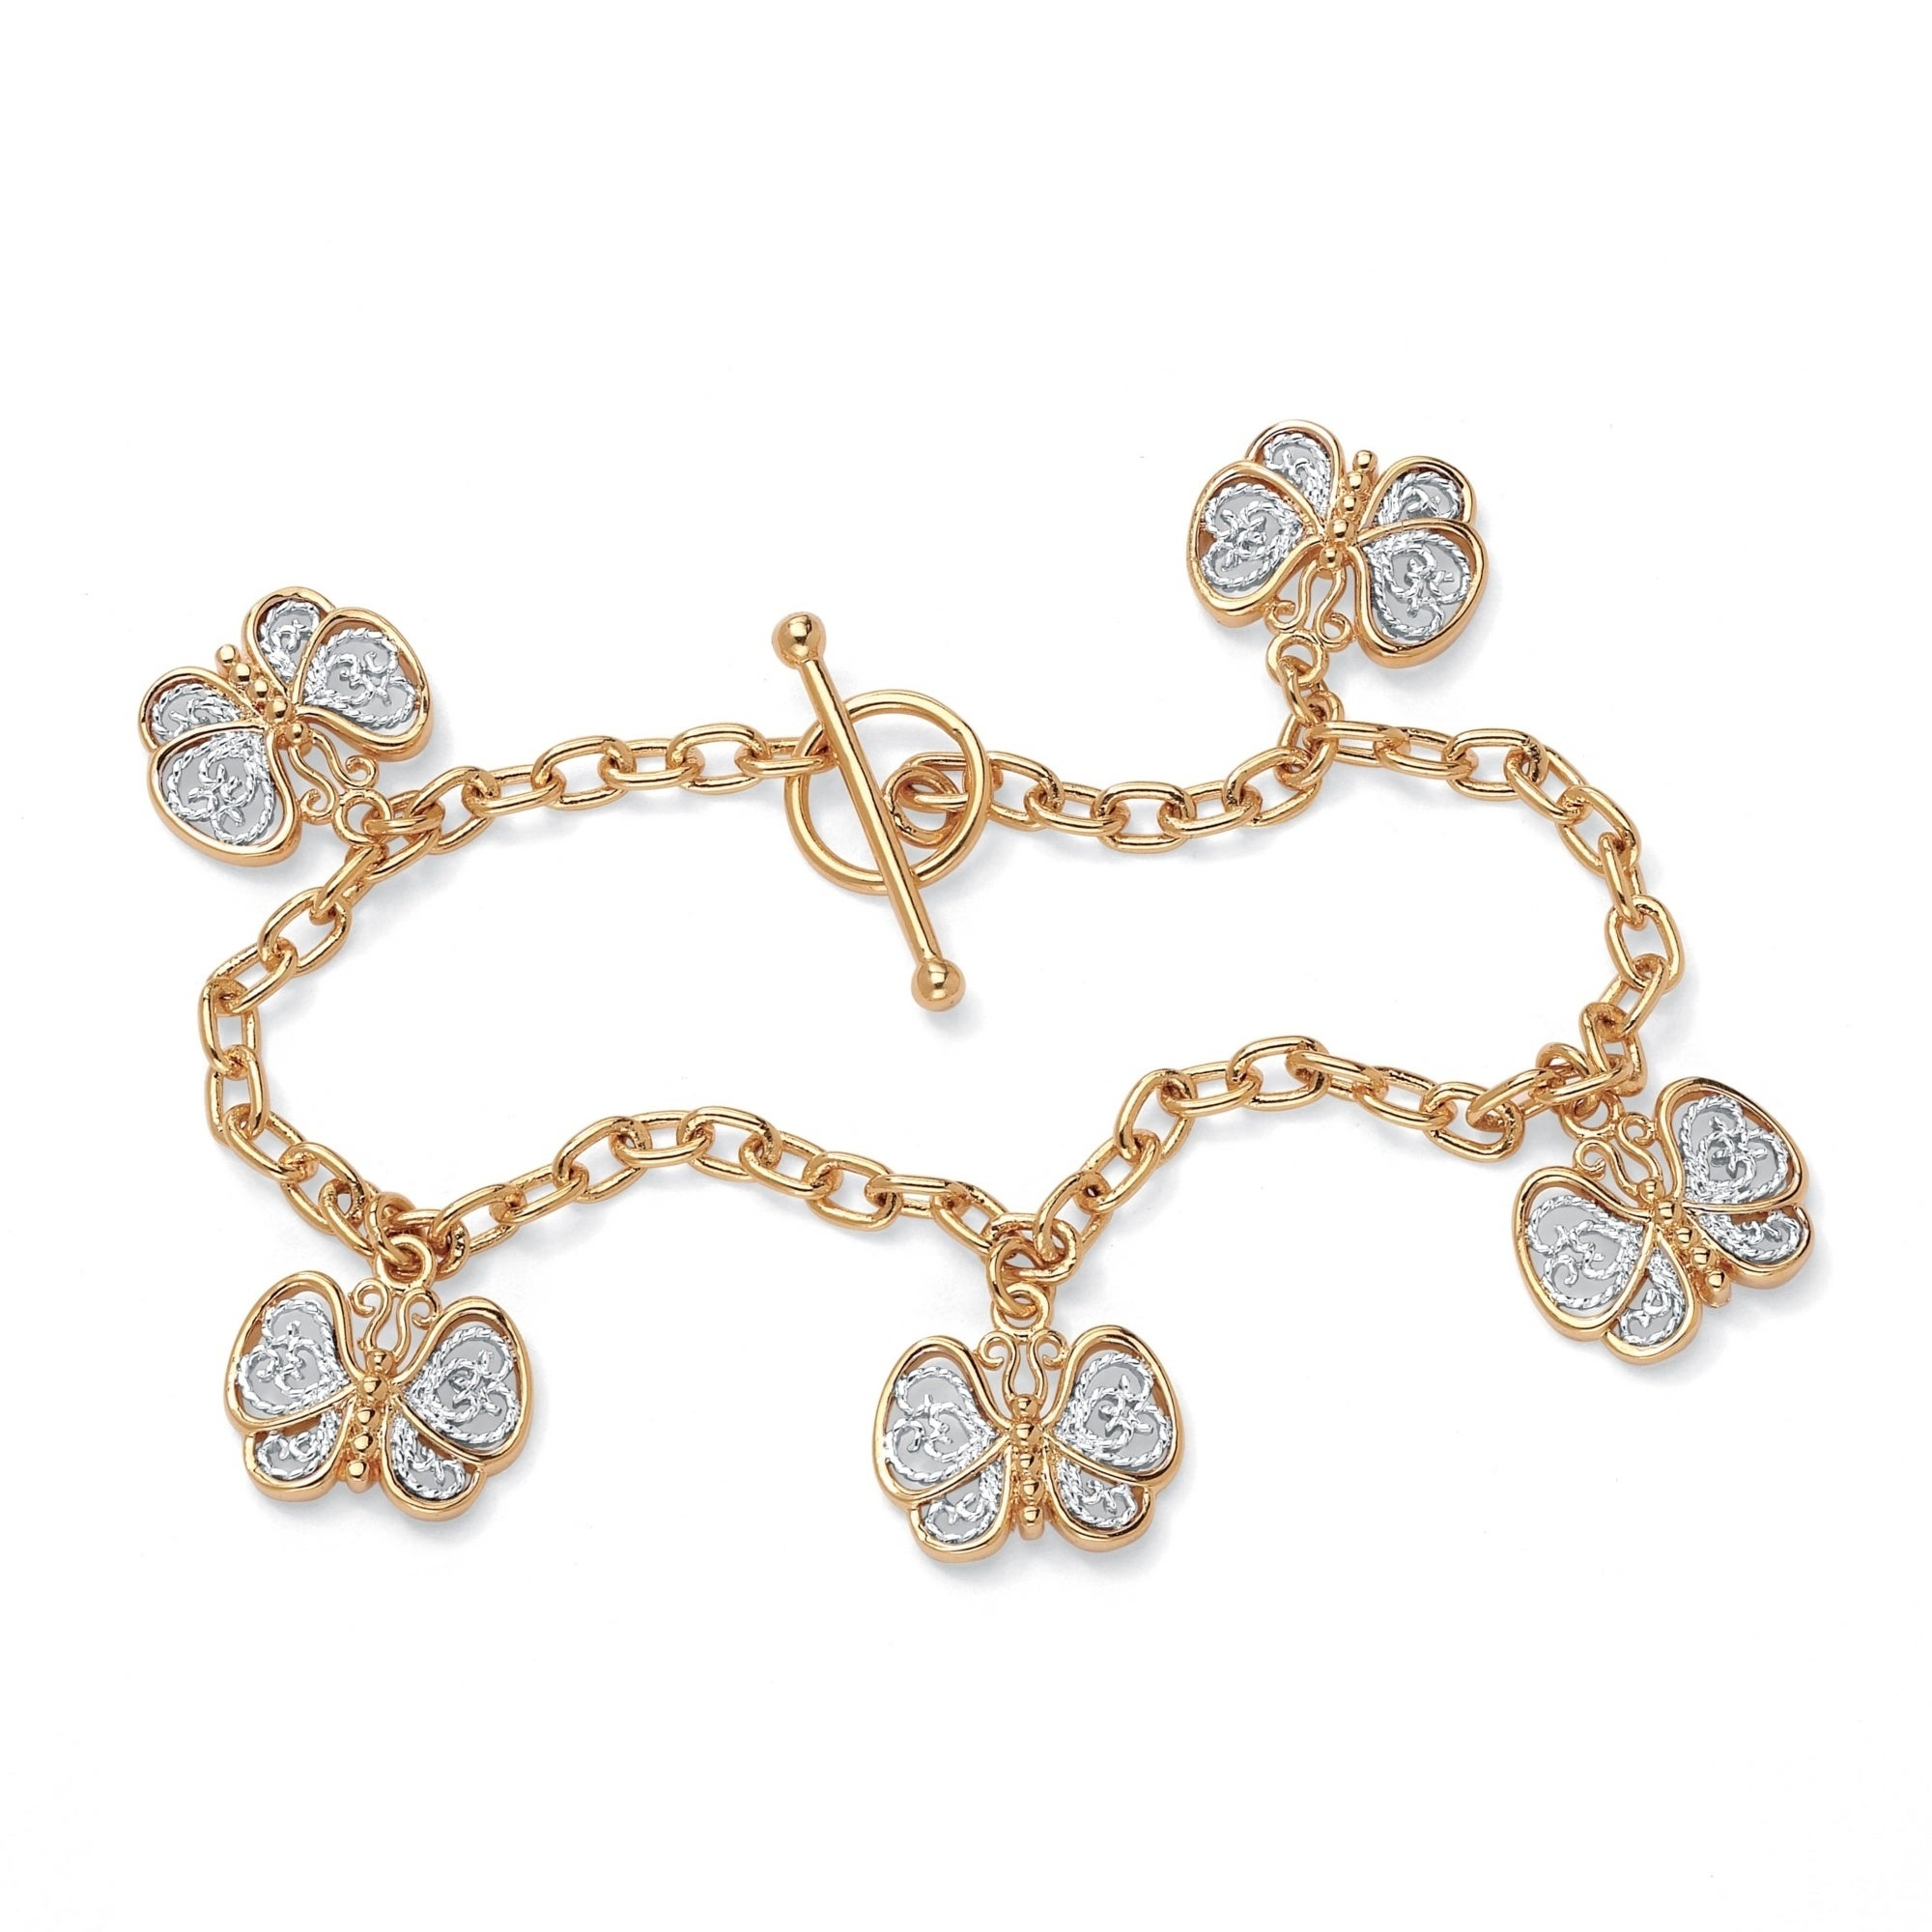 Palm Beach 18k Gold-Plated Filigree Butterfly Charm Brace...